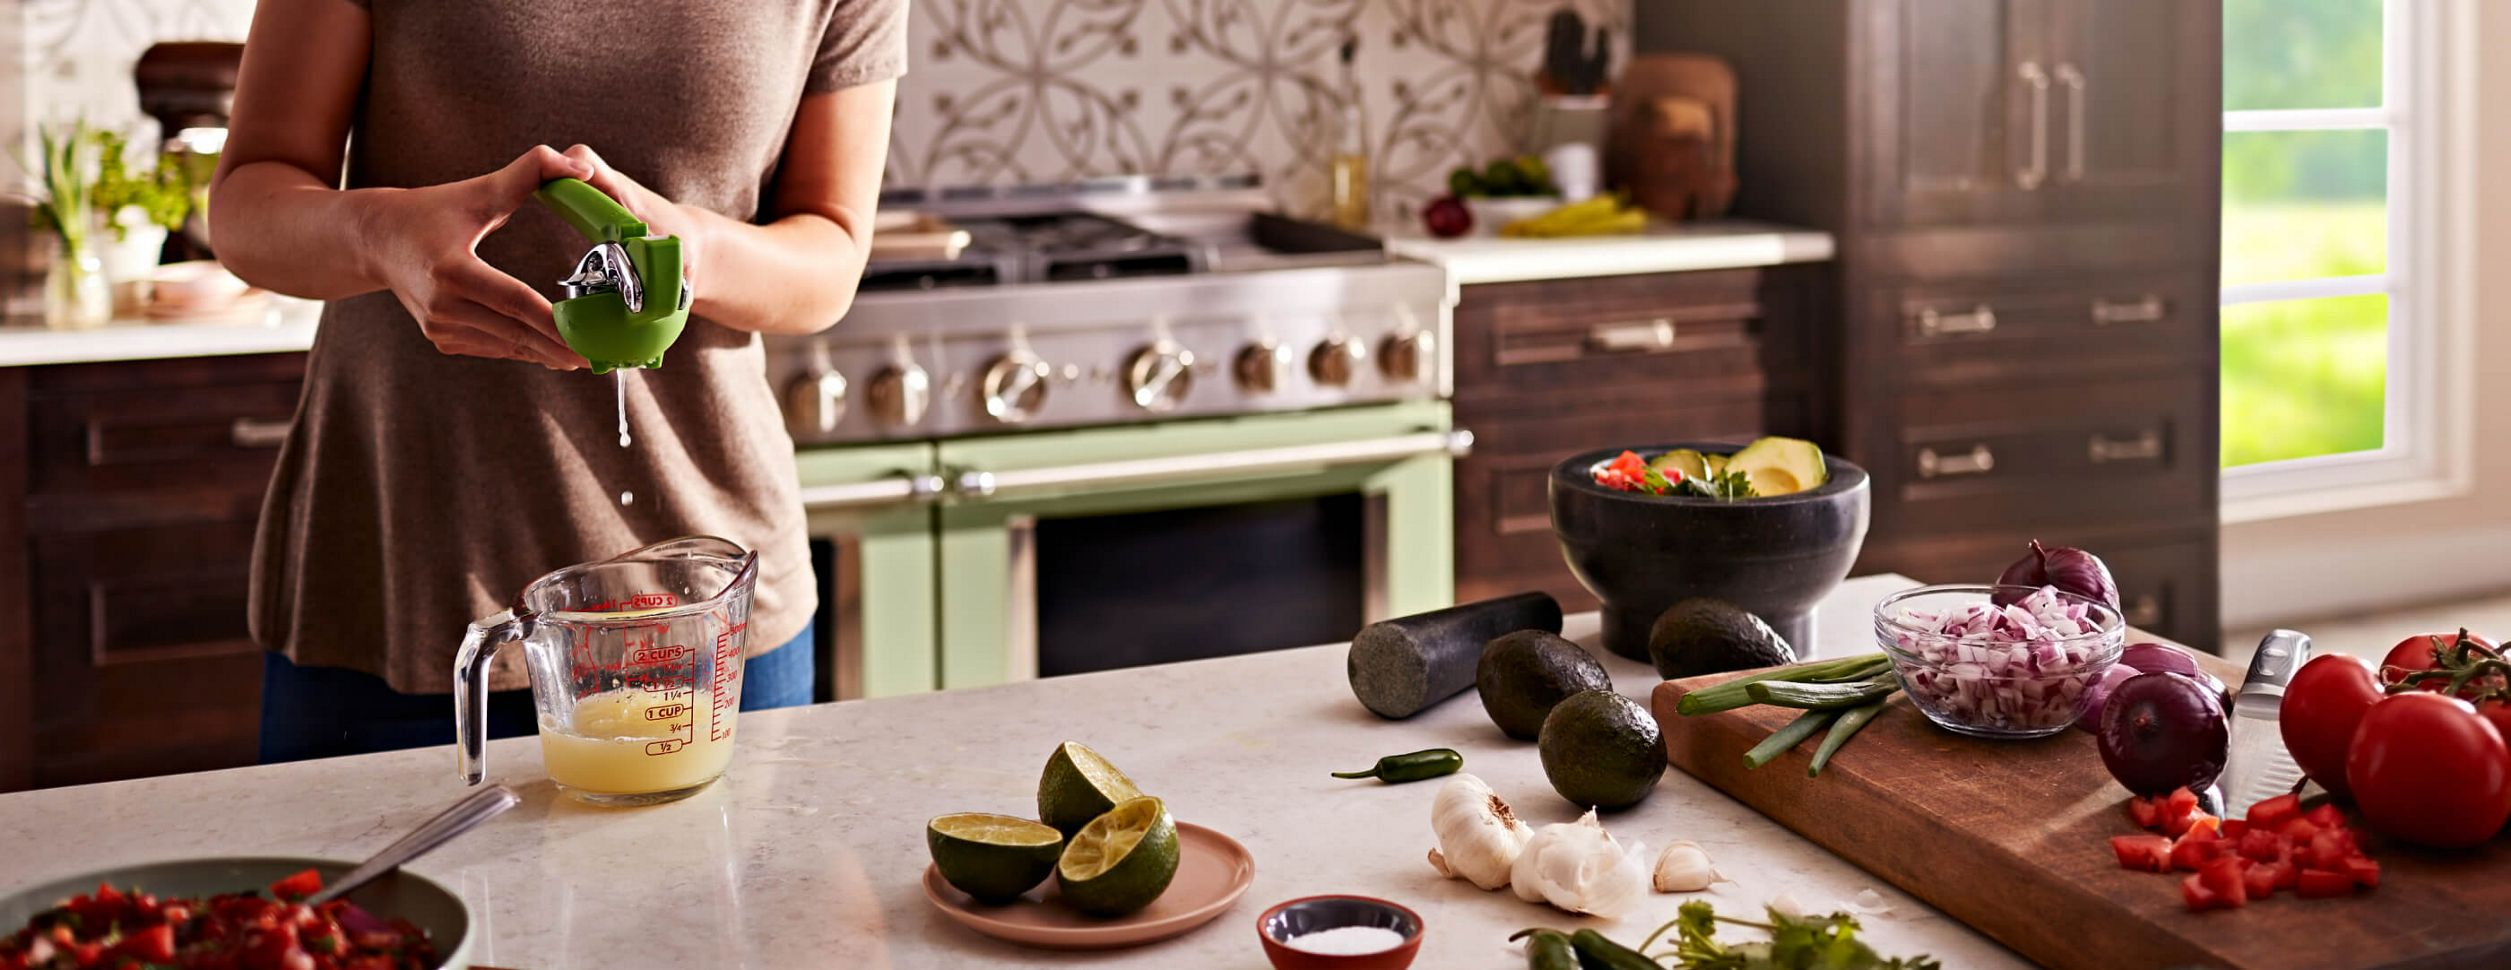 A young woman passionately working in her kitchen, featuring an Avocado Cream commercial-style range.